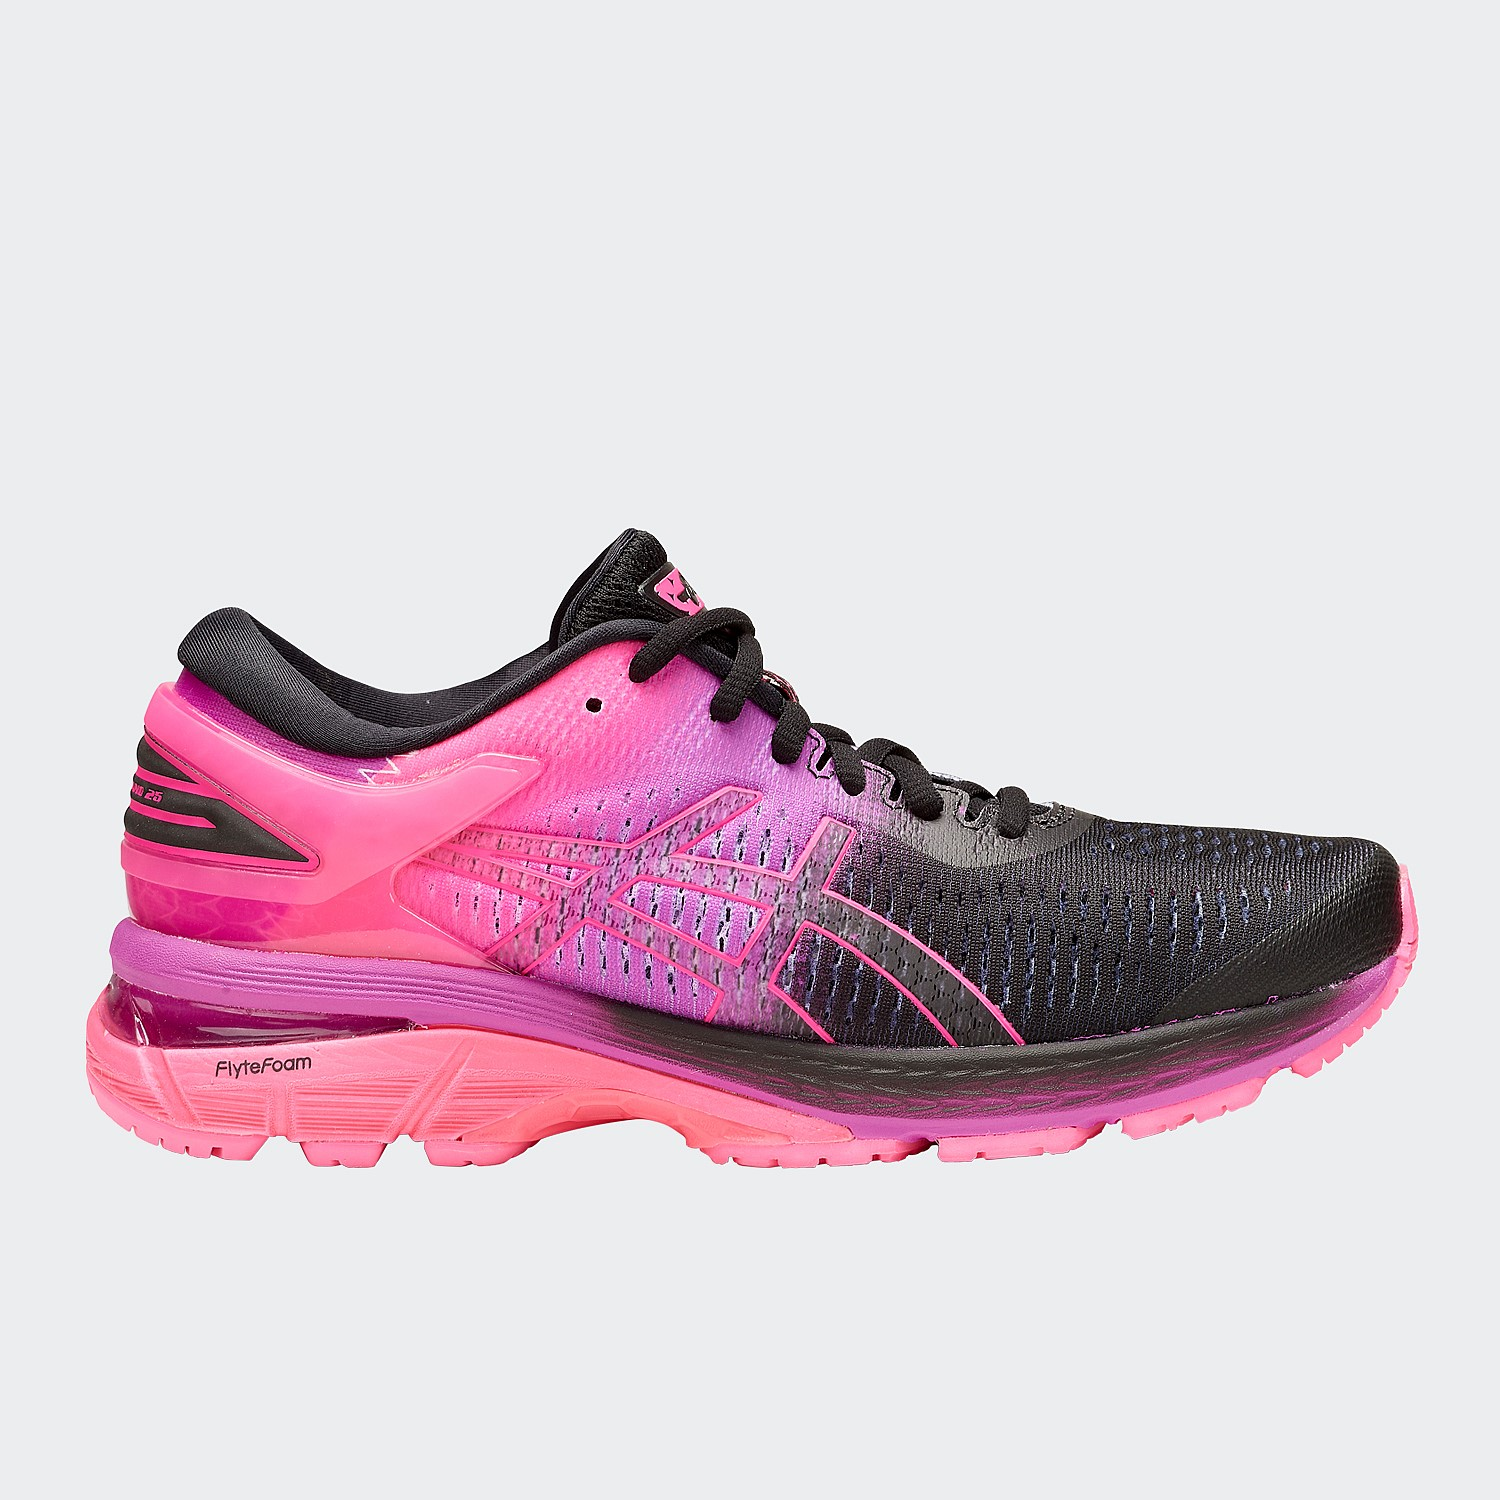 8b2edd4e626d ASICS FluidFit upper technology combines multi-directional stretch mesh  with stretch reinforcements that adapt to the athlete s foot